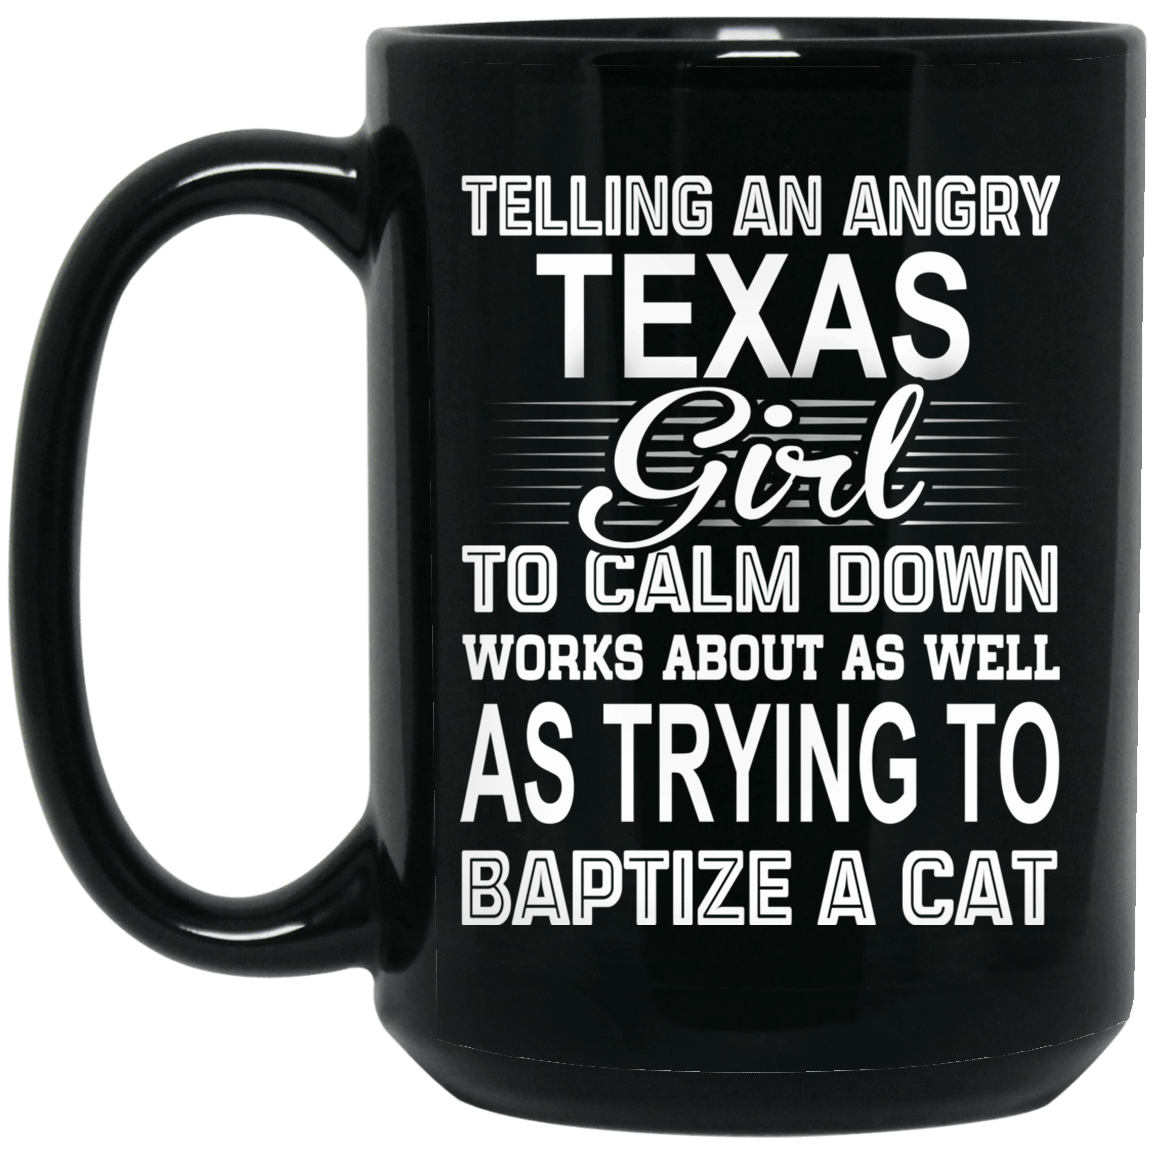 Telling An Angry Texas Girl To Calm Down Works About As Well As Trying To Baptize A Cat Mug 1066-10182-76151613-49311 - Tee Ript